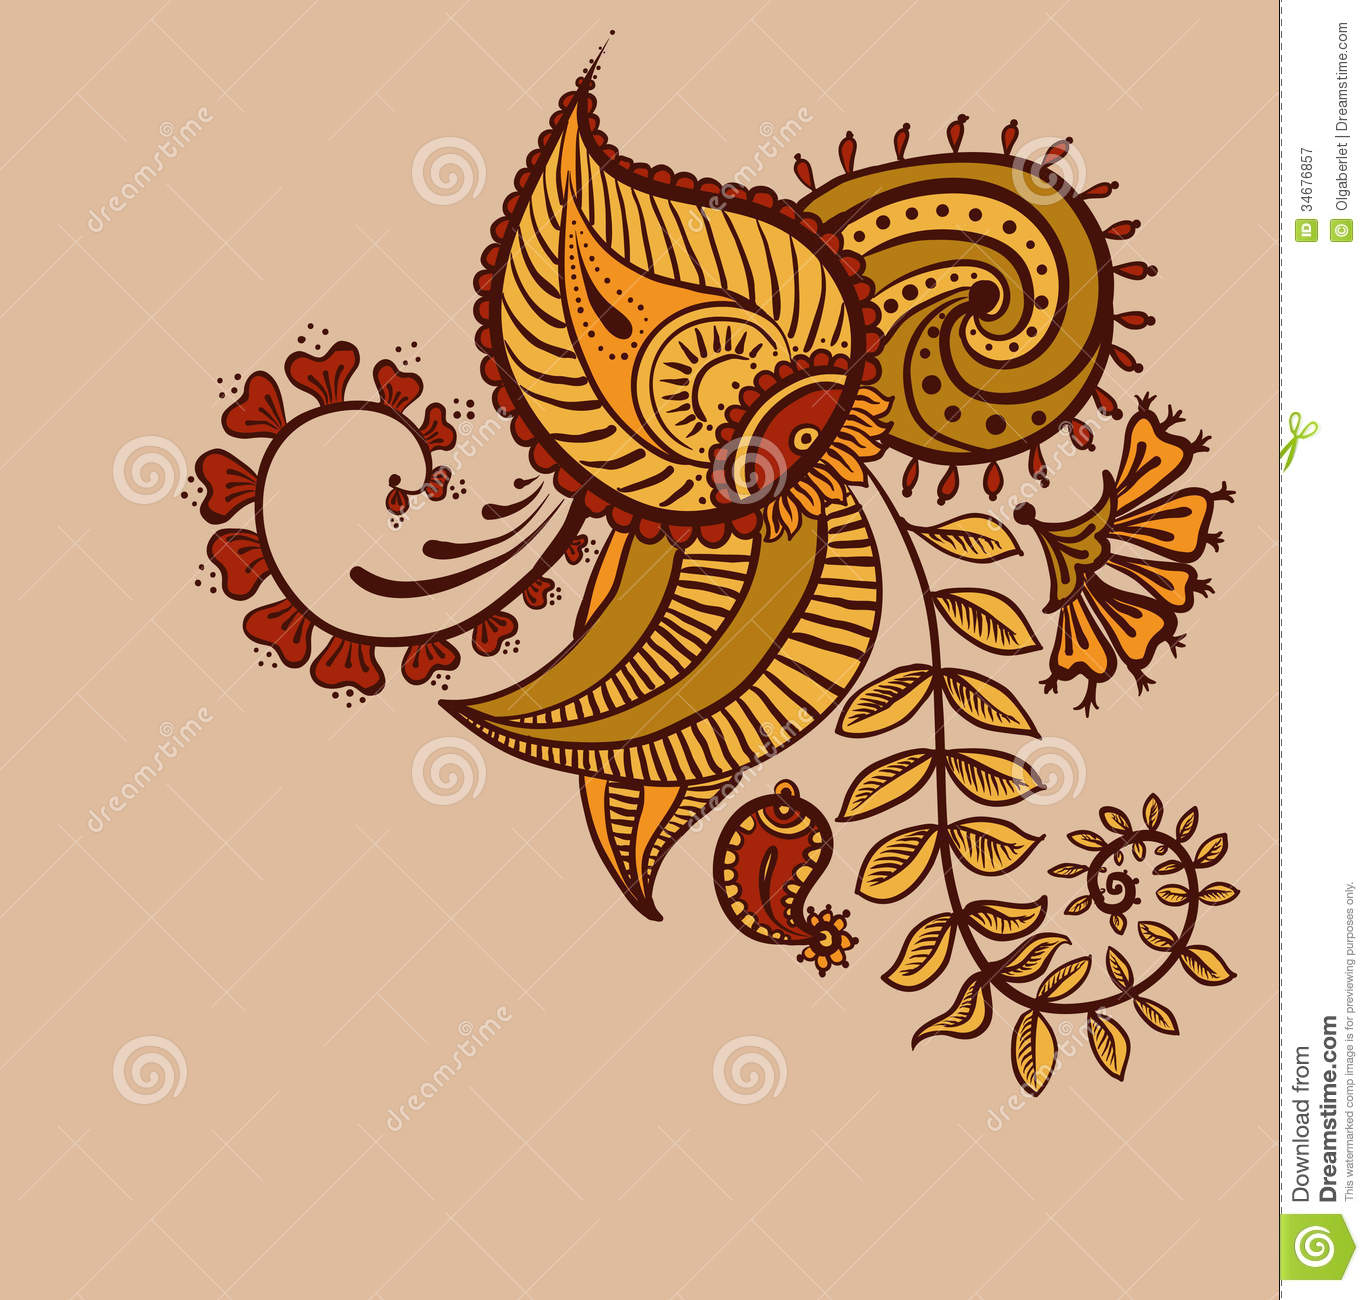 Paisley Flowers Henna Tattoo Design: Floral Paisley Design Stock Vector. Illustration Of Lace